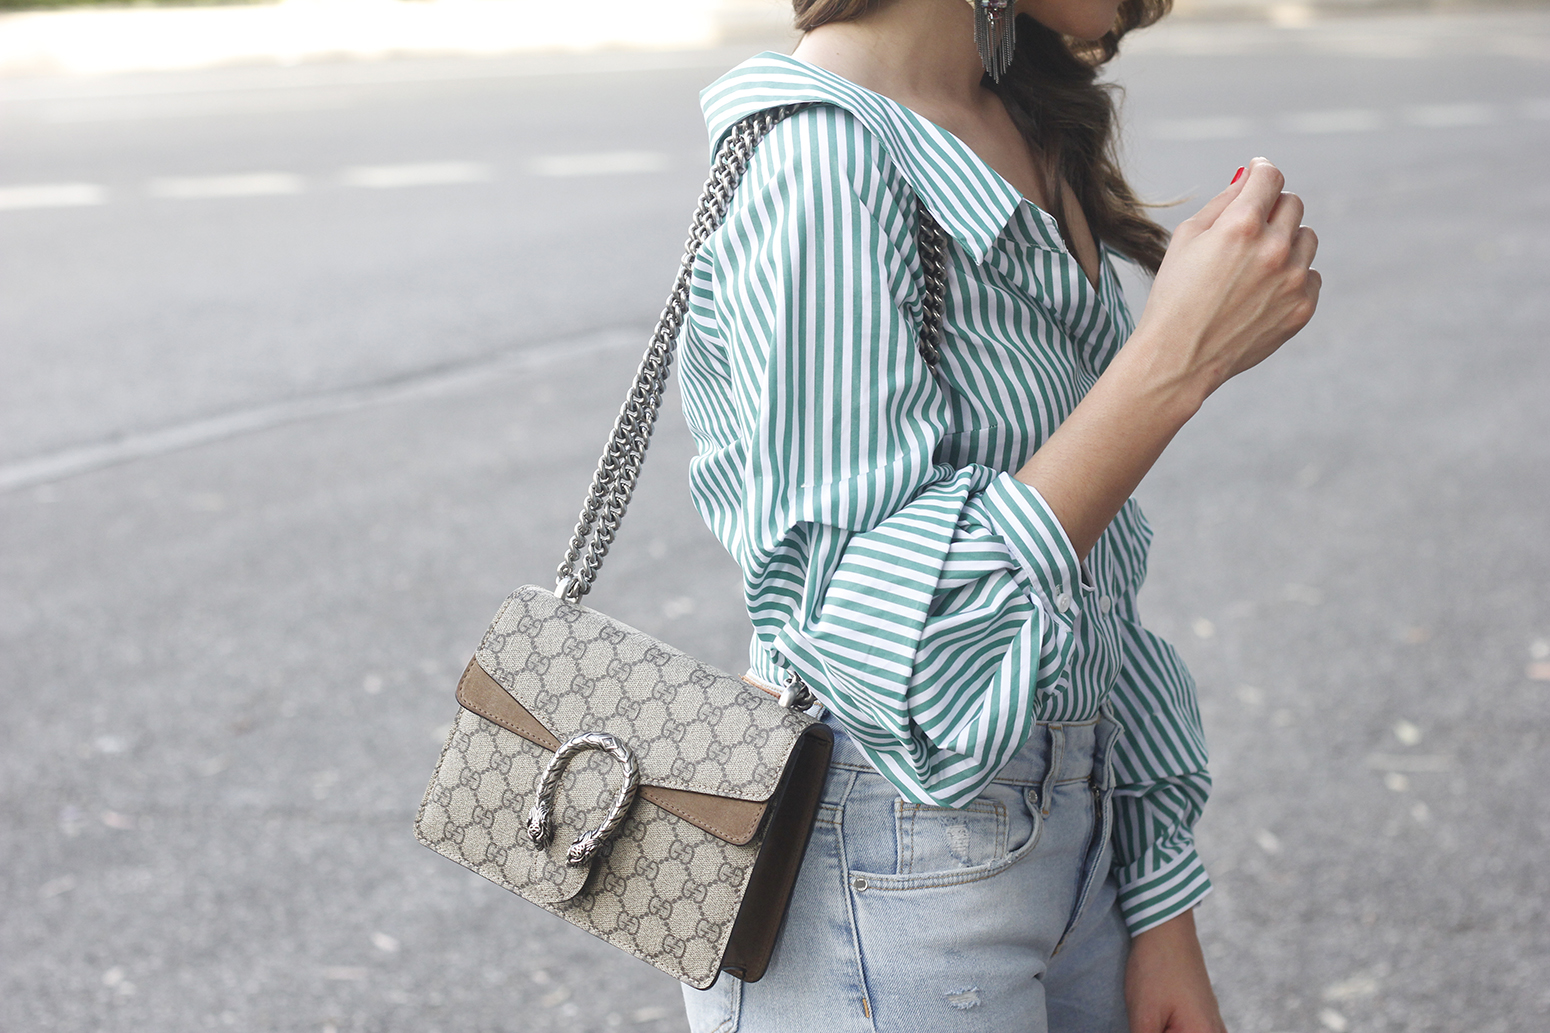 striped shirt jeans gucci bag uterqüe earrings pink heels accessories style outfit12